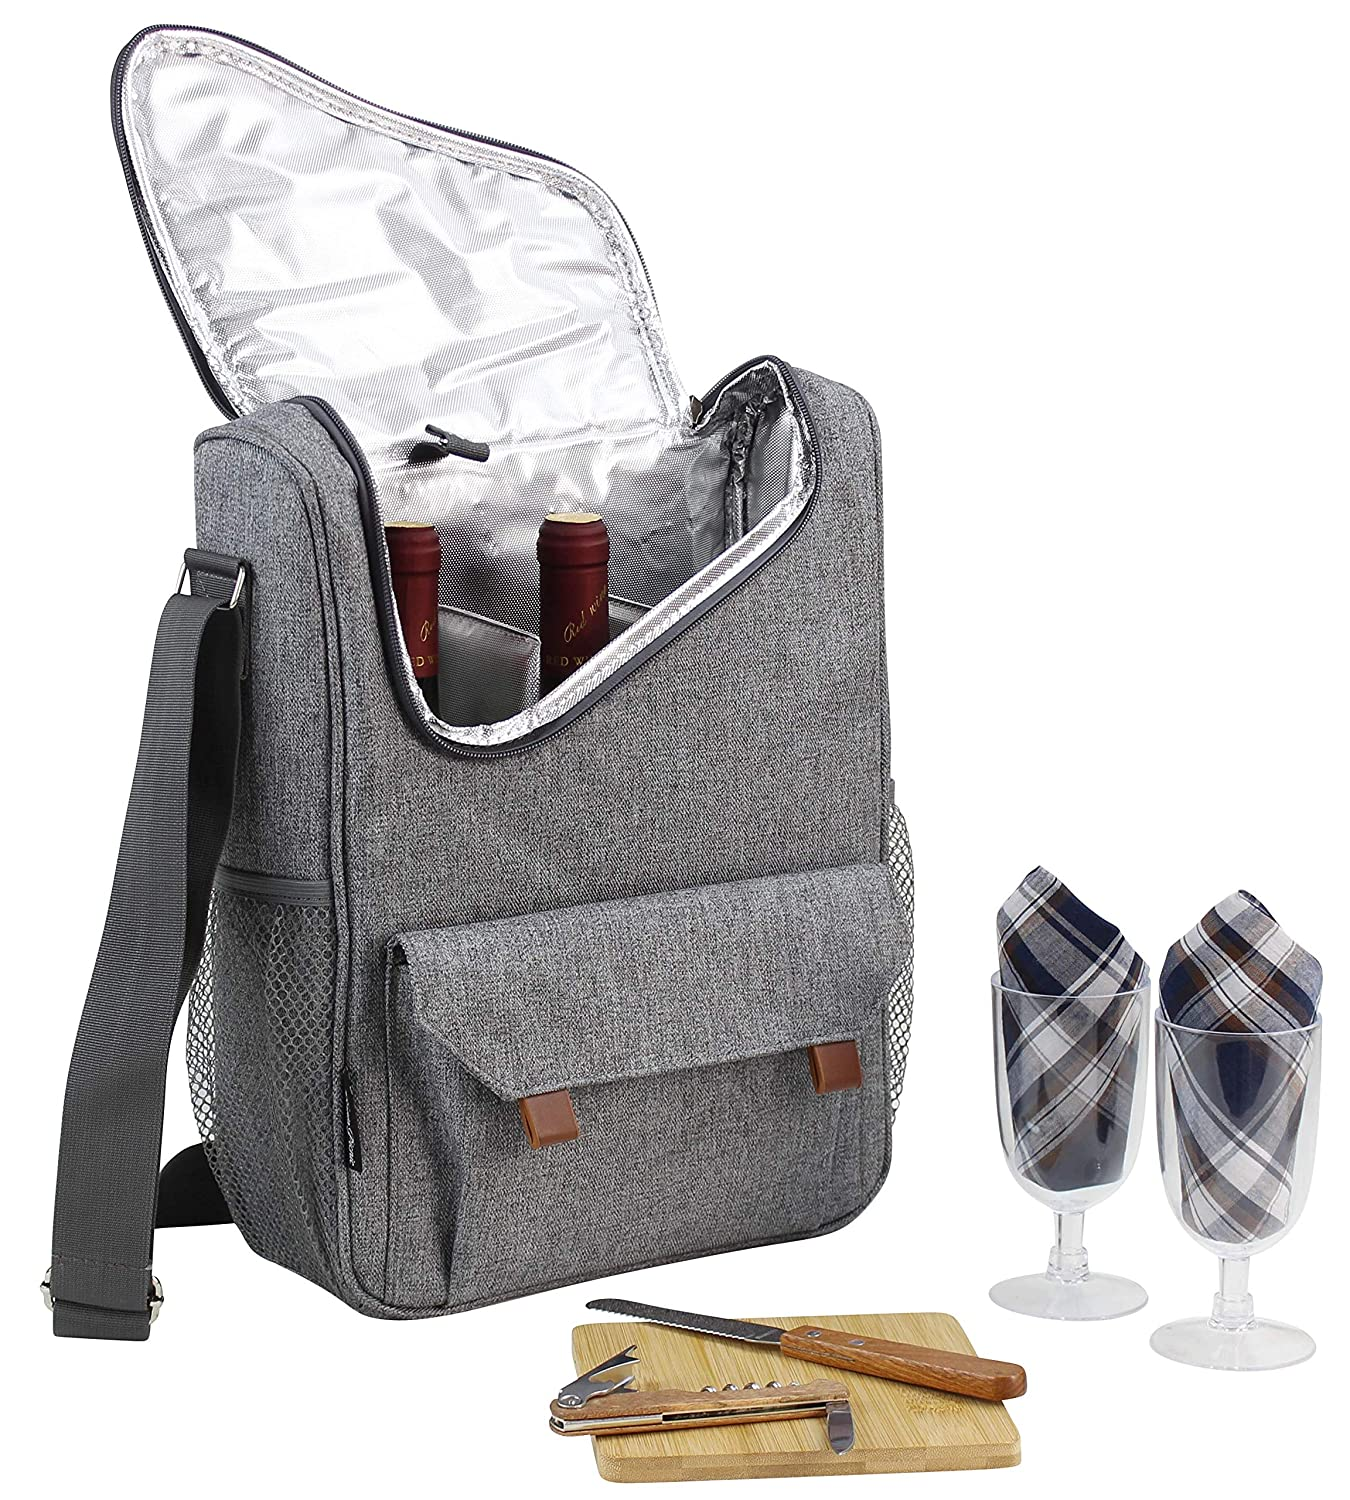 Wine Bottle Carrier 2 Bottle Capacity with Wine Glasses and Cheese Board  Set | Highest Quality Wine Bag for Wine Lover Gifts and Picnic | Insulated  Wine Tote Bag with Handle and